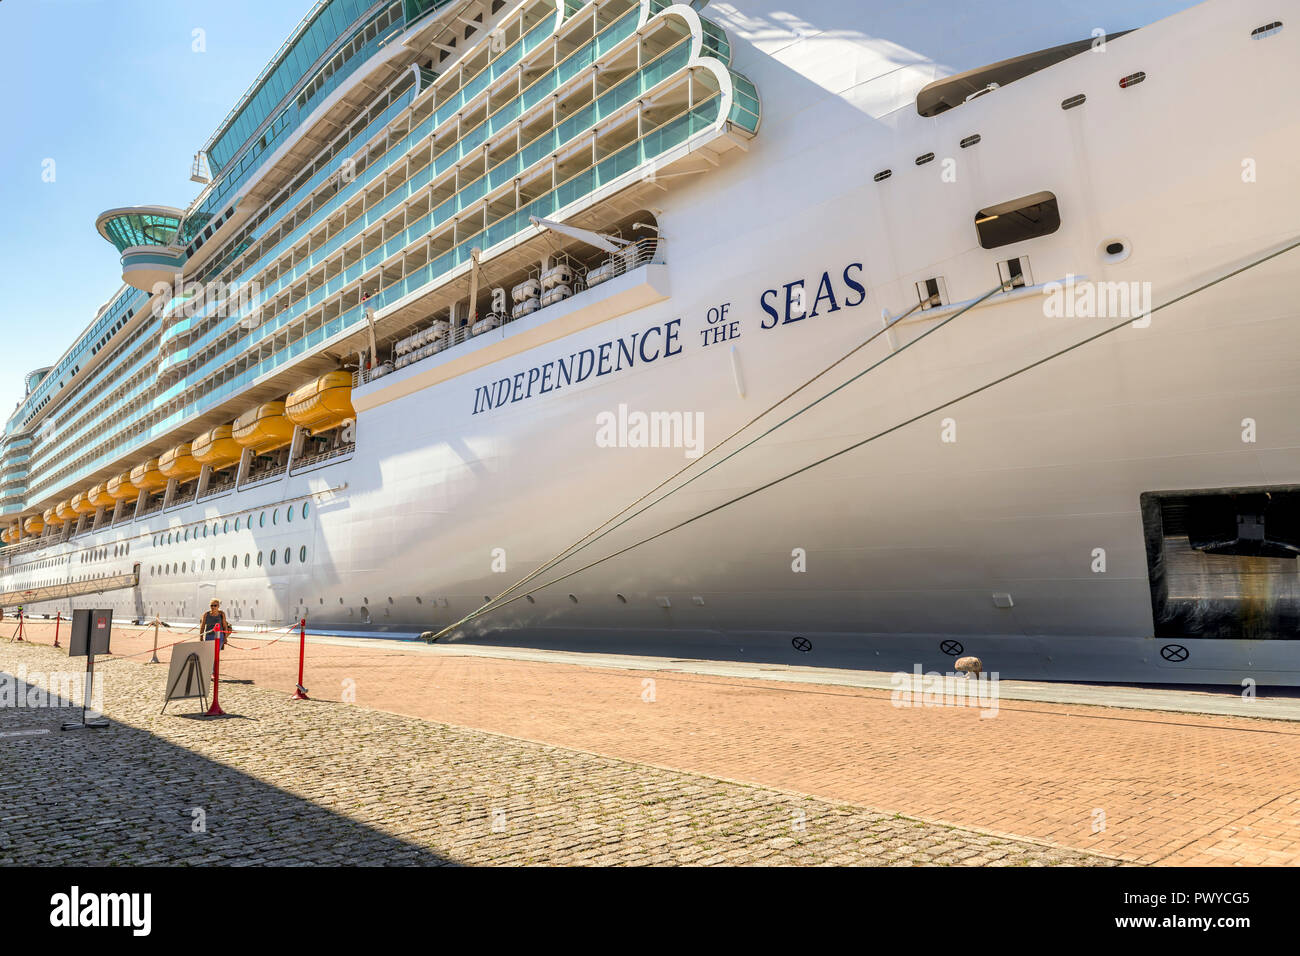 Royal Caribbean cruise ship Independence of the seas docked in Vigo Spain - Stock Image